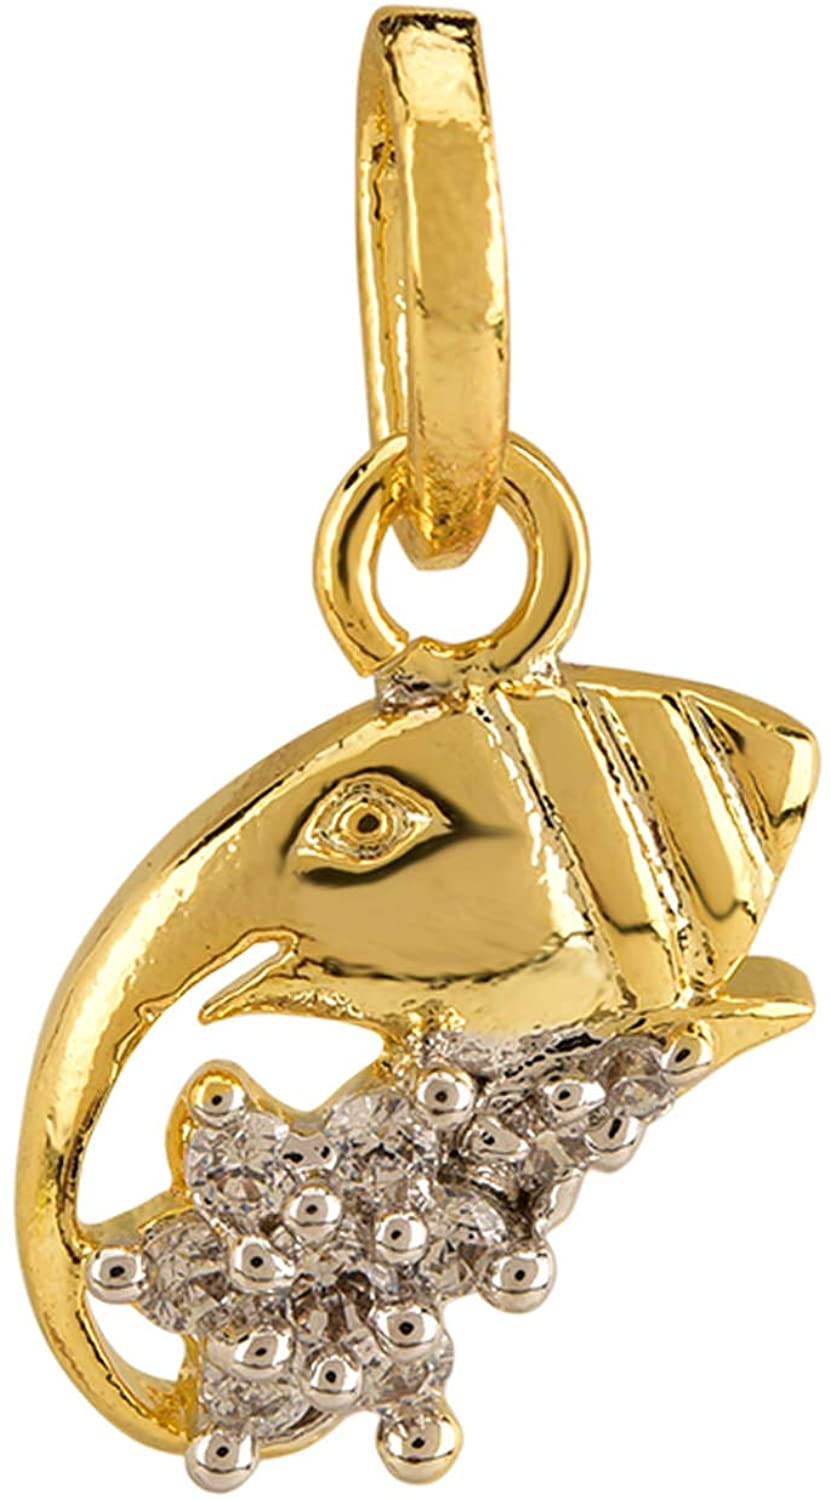 Efulgenz Silver Plated Cubic Zirconia Religious Lord Ganesha Pendant Chain Necklace Jewelry for Women Girls